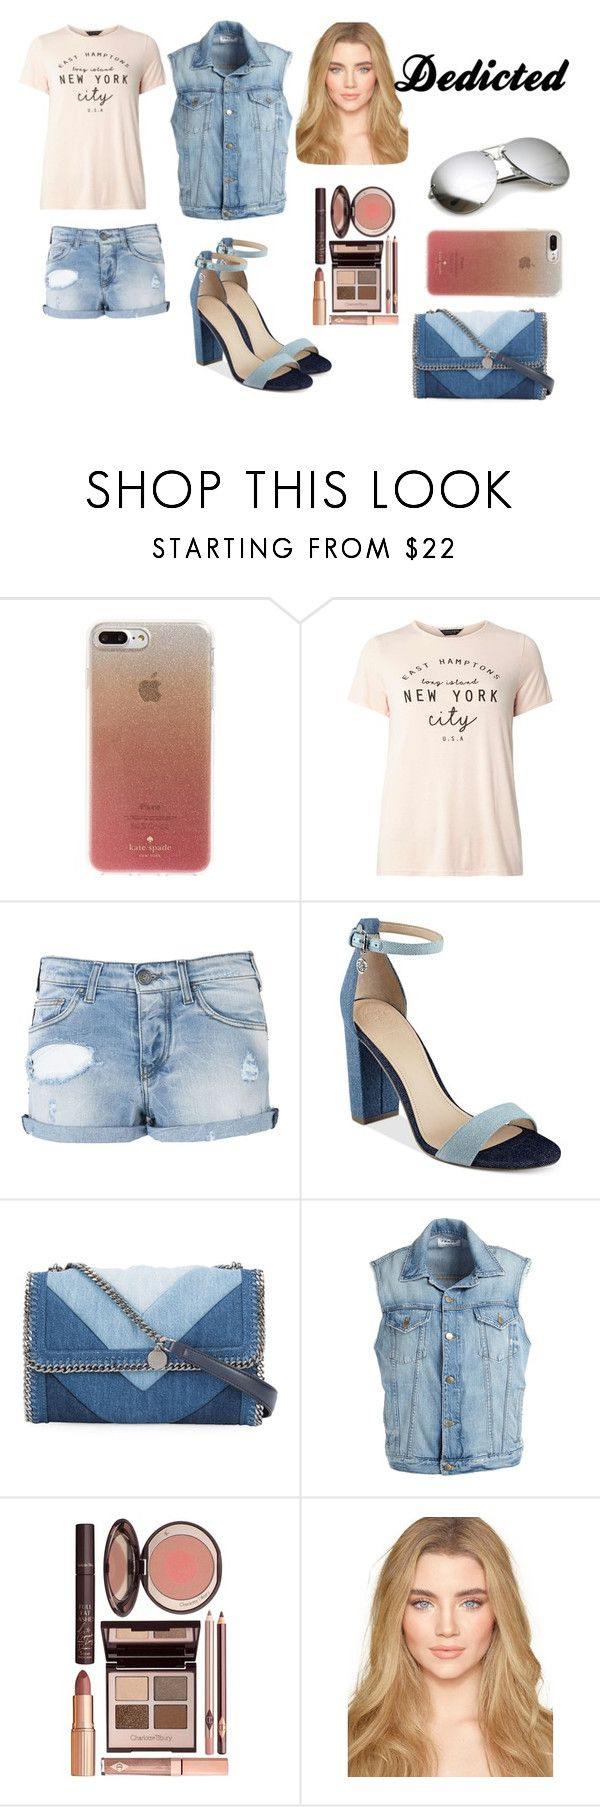 """""""Outfit #24"""" by sci-fi-gal ❤ liked on Polyvore featuring Kate Spade, Dorothy Perkins, Armani Jeans, GUESS, STELLA McCARTNEY, Frame and Charlotte Tilbury"""